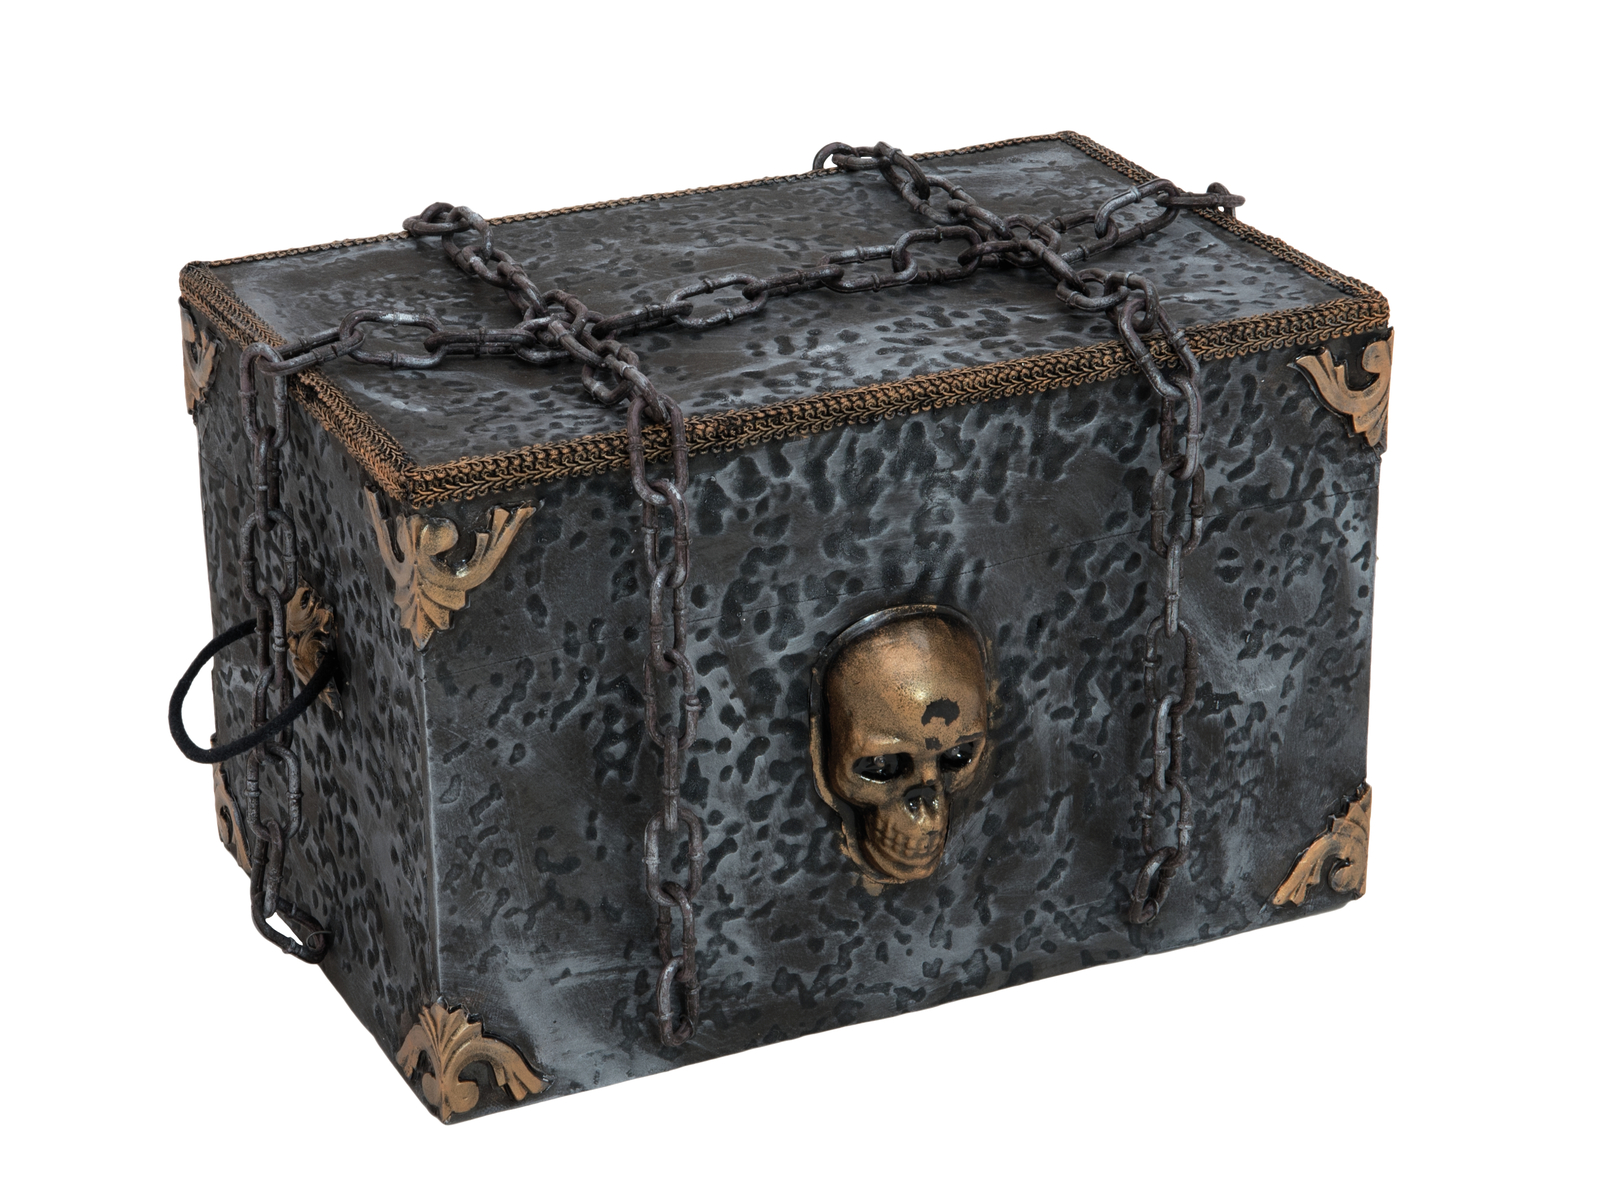 EUROPALMS Halloween Pirata Box, 32x48x32cm